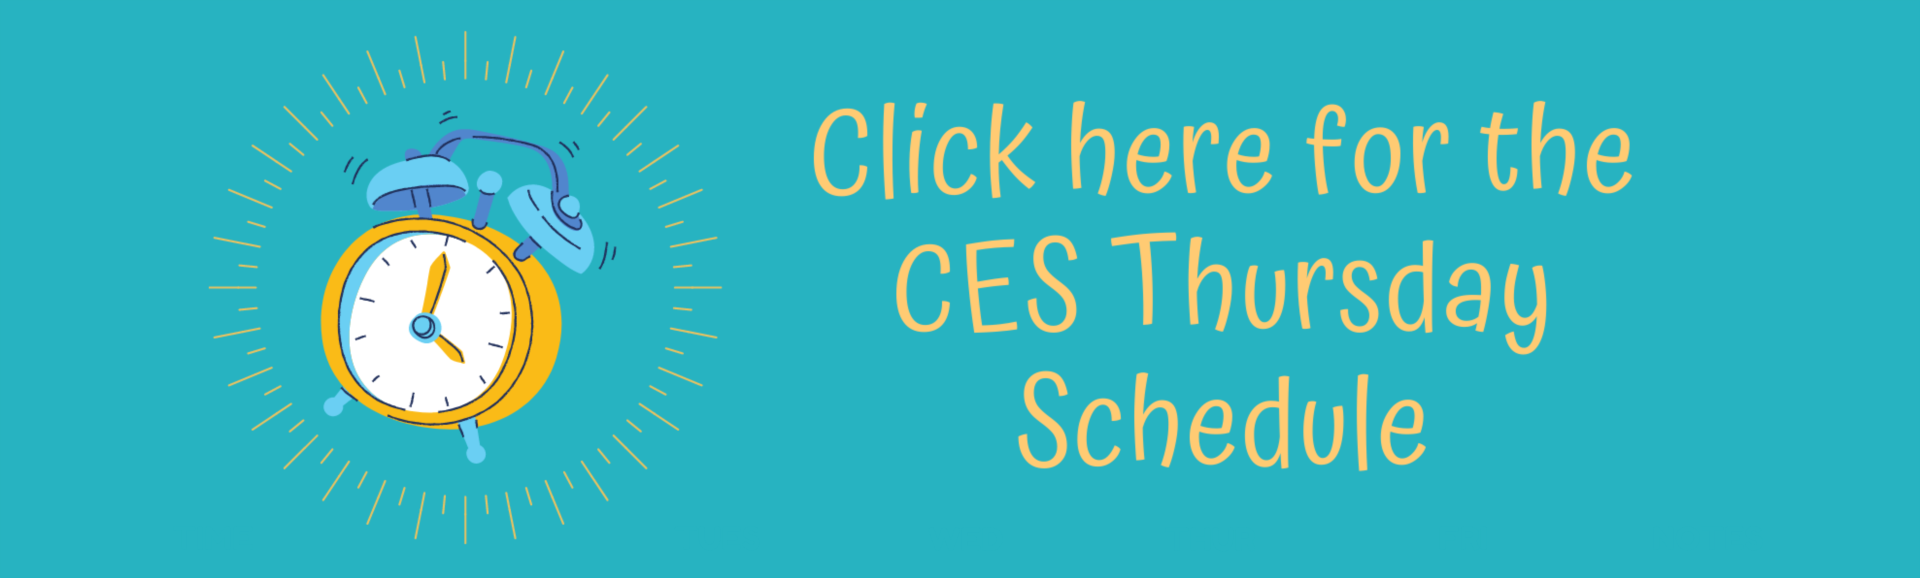 CES Thursday Schedule